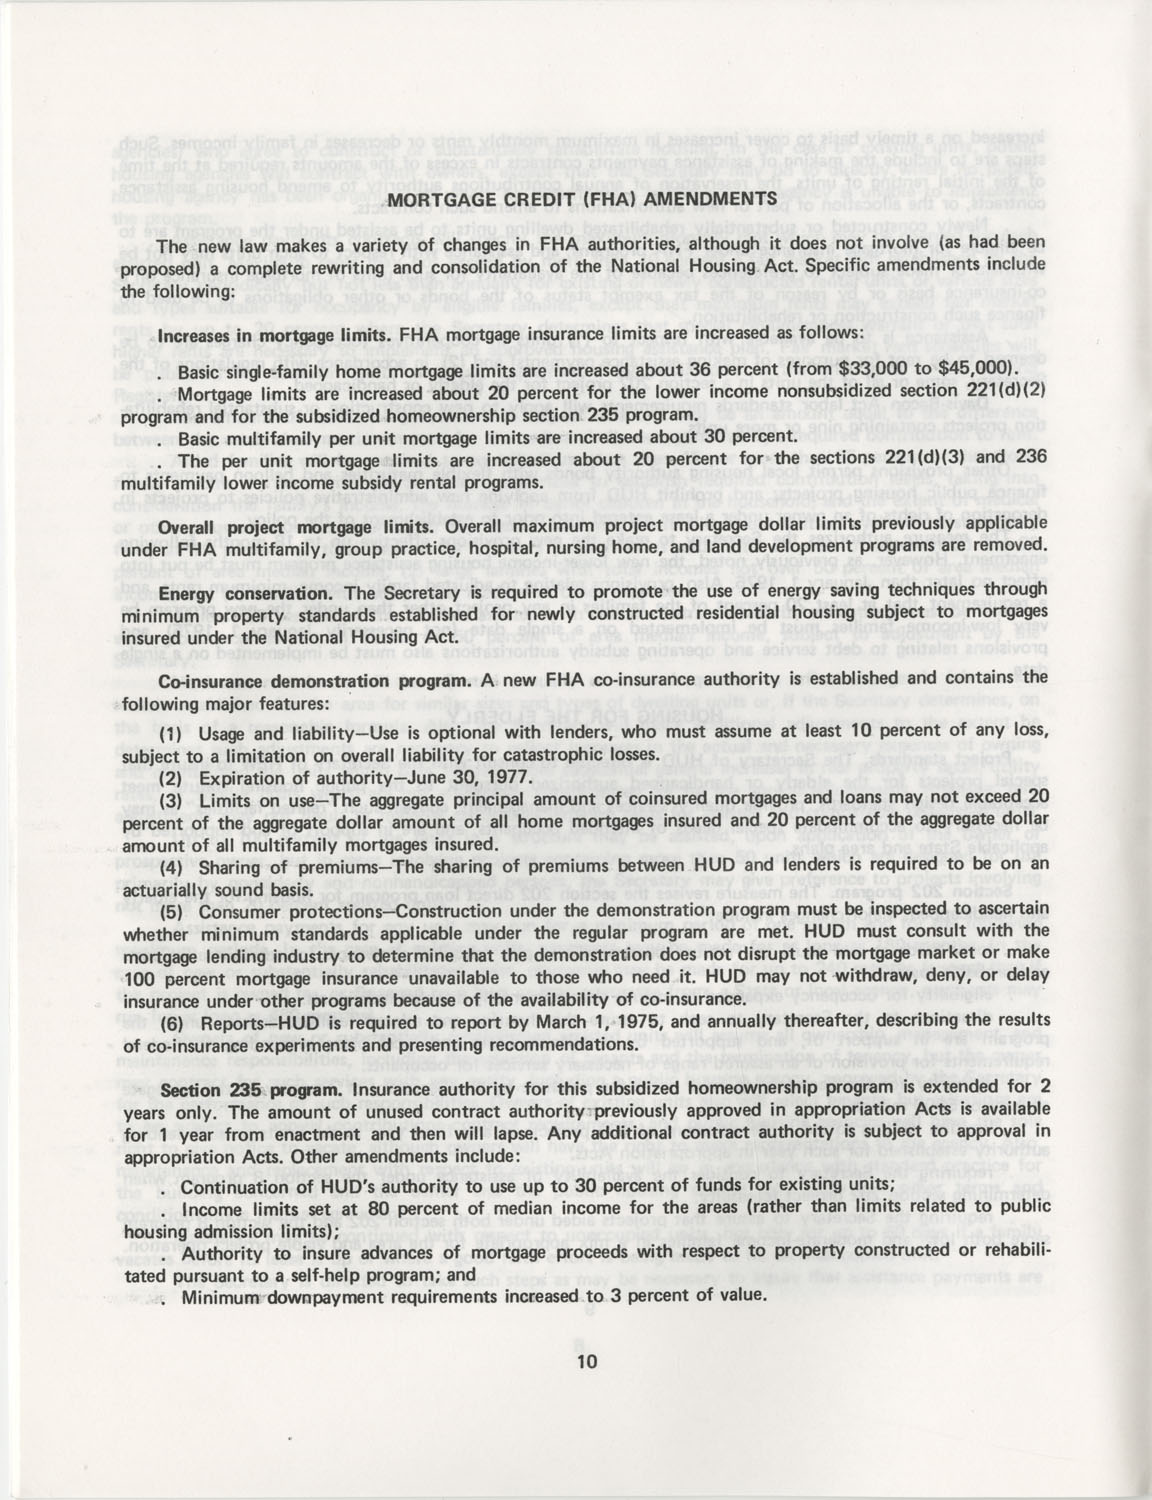 Summary of the Housing and Community Development Act of 1974, Page 10